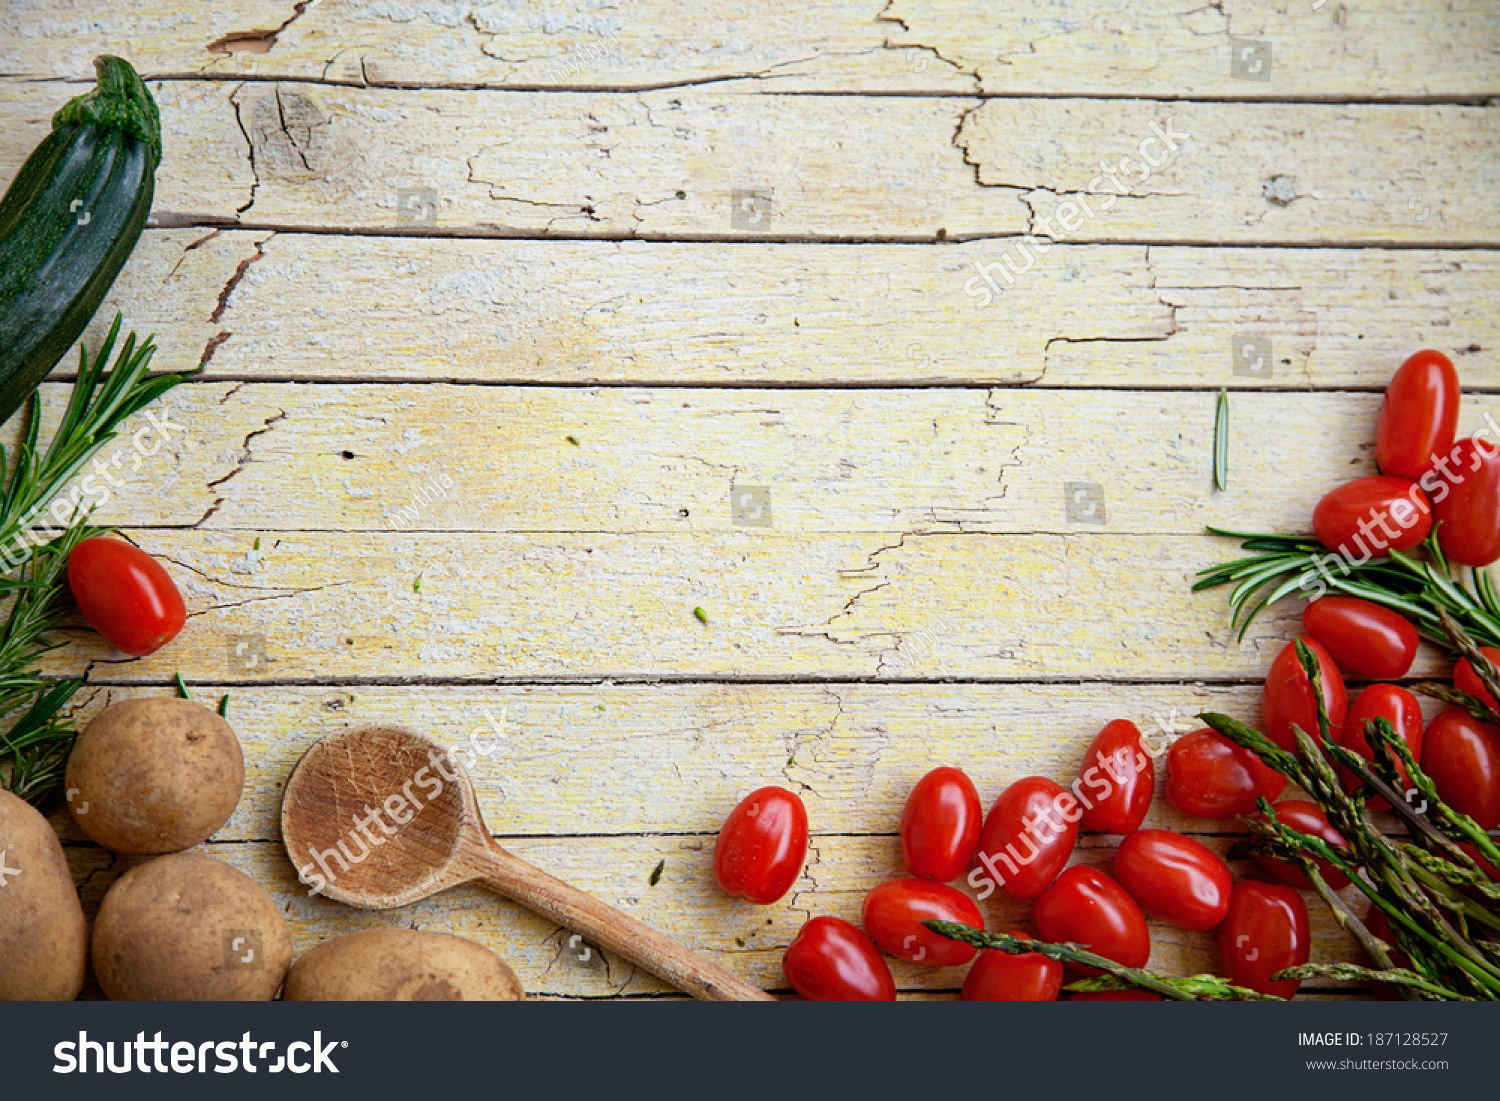 Fresh Organic Vegetables Food Background Healthy Stock Photo Edit Now 187128527